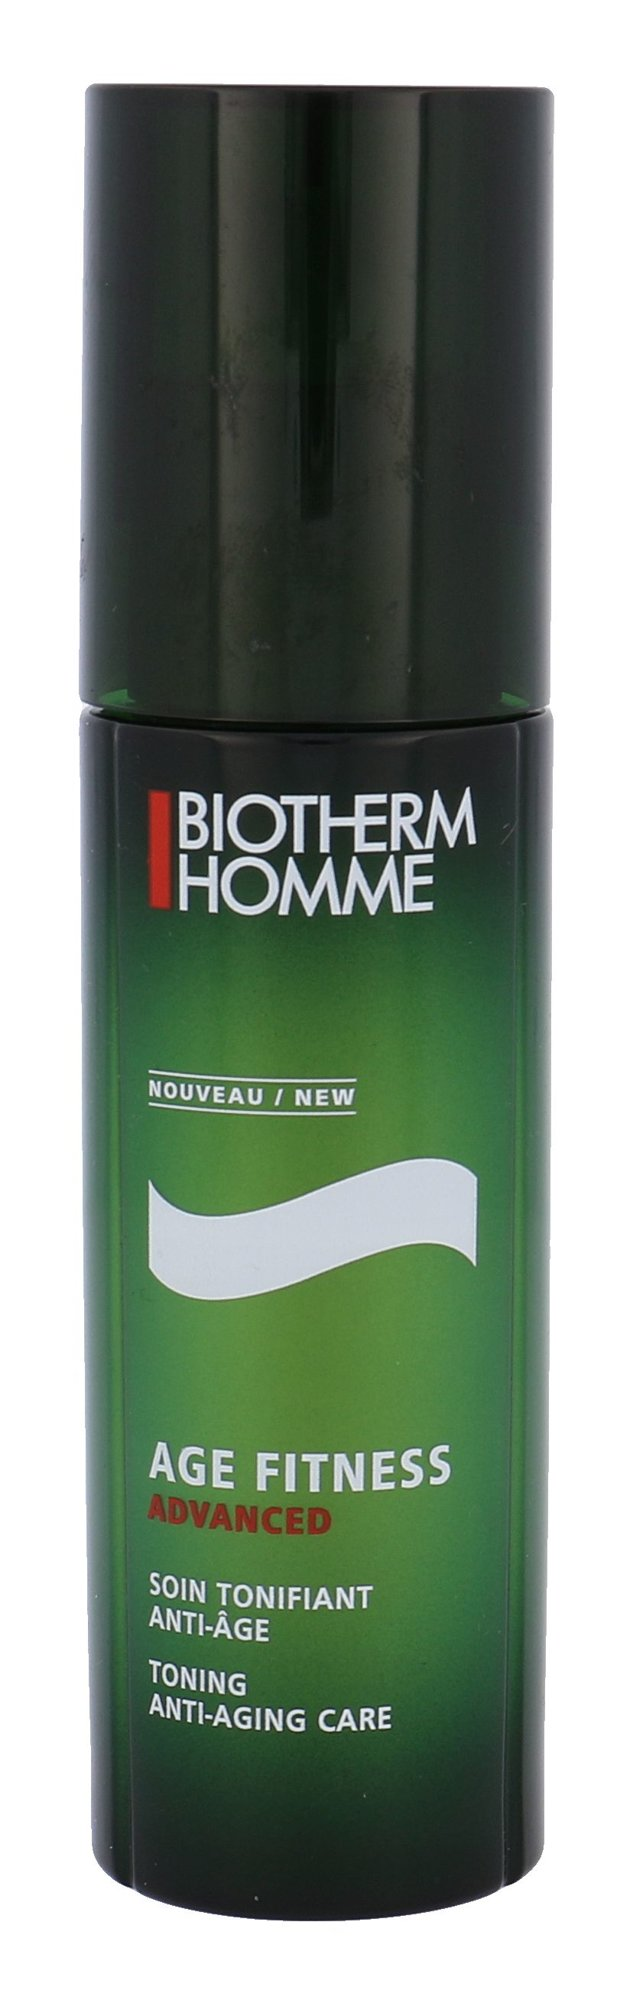 Biotherm Homme Age Fitness Cosmetic 50ml  Advanced